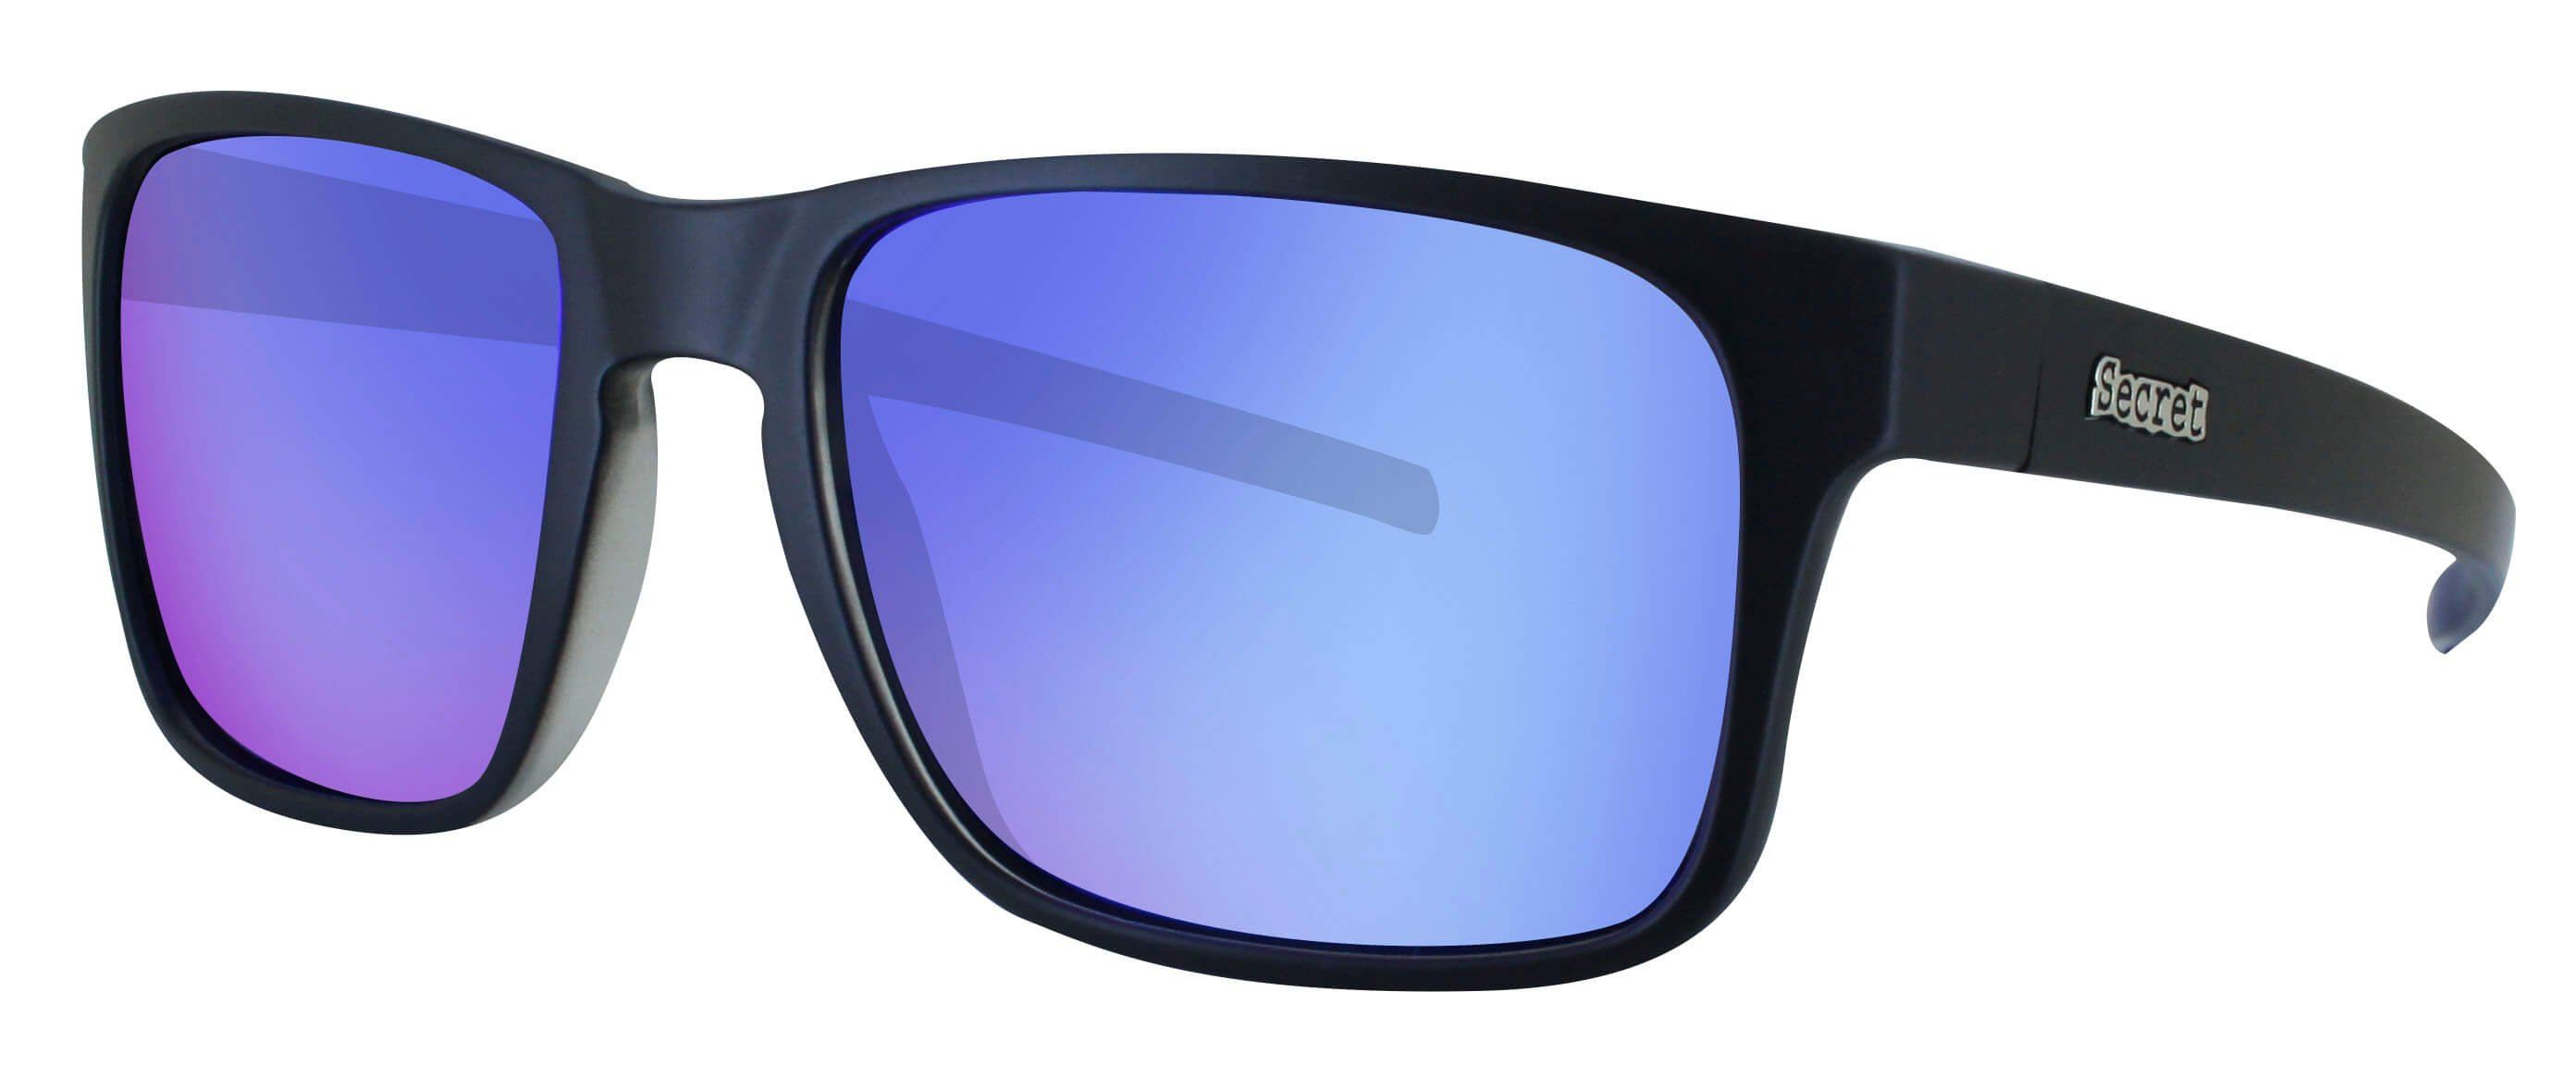 ÓC SECRET MOTLEY FADE INVERT BLUE / POLARIZED BLUE